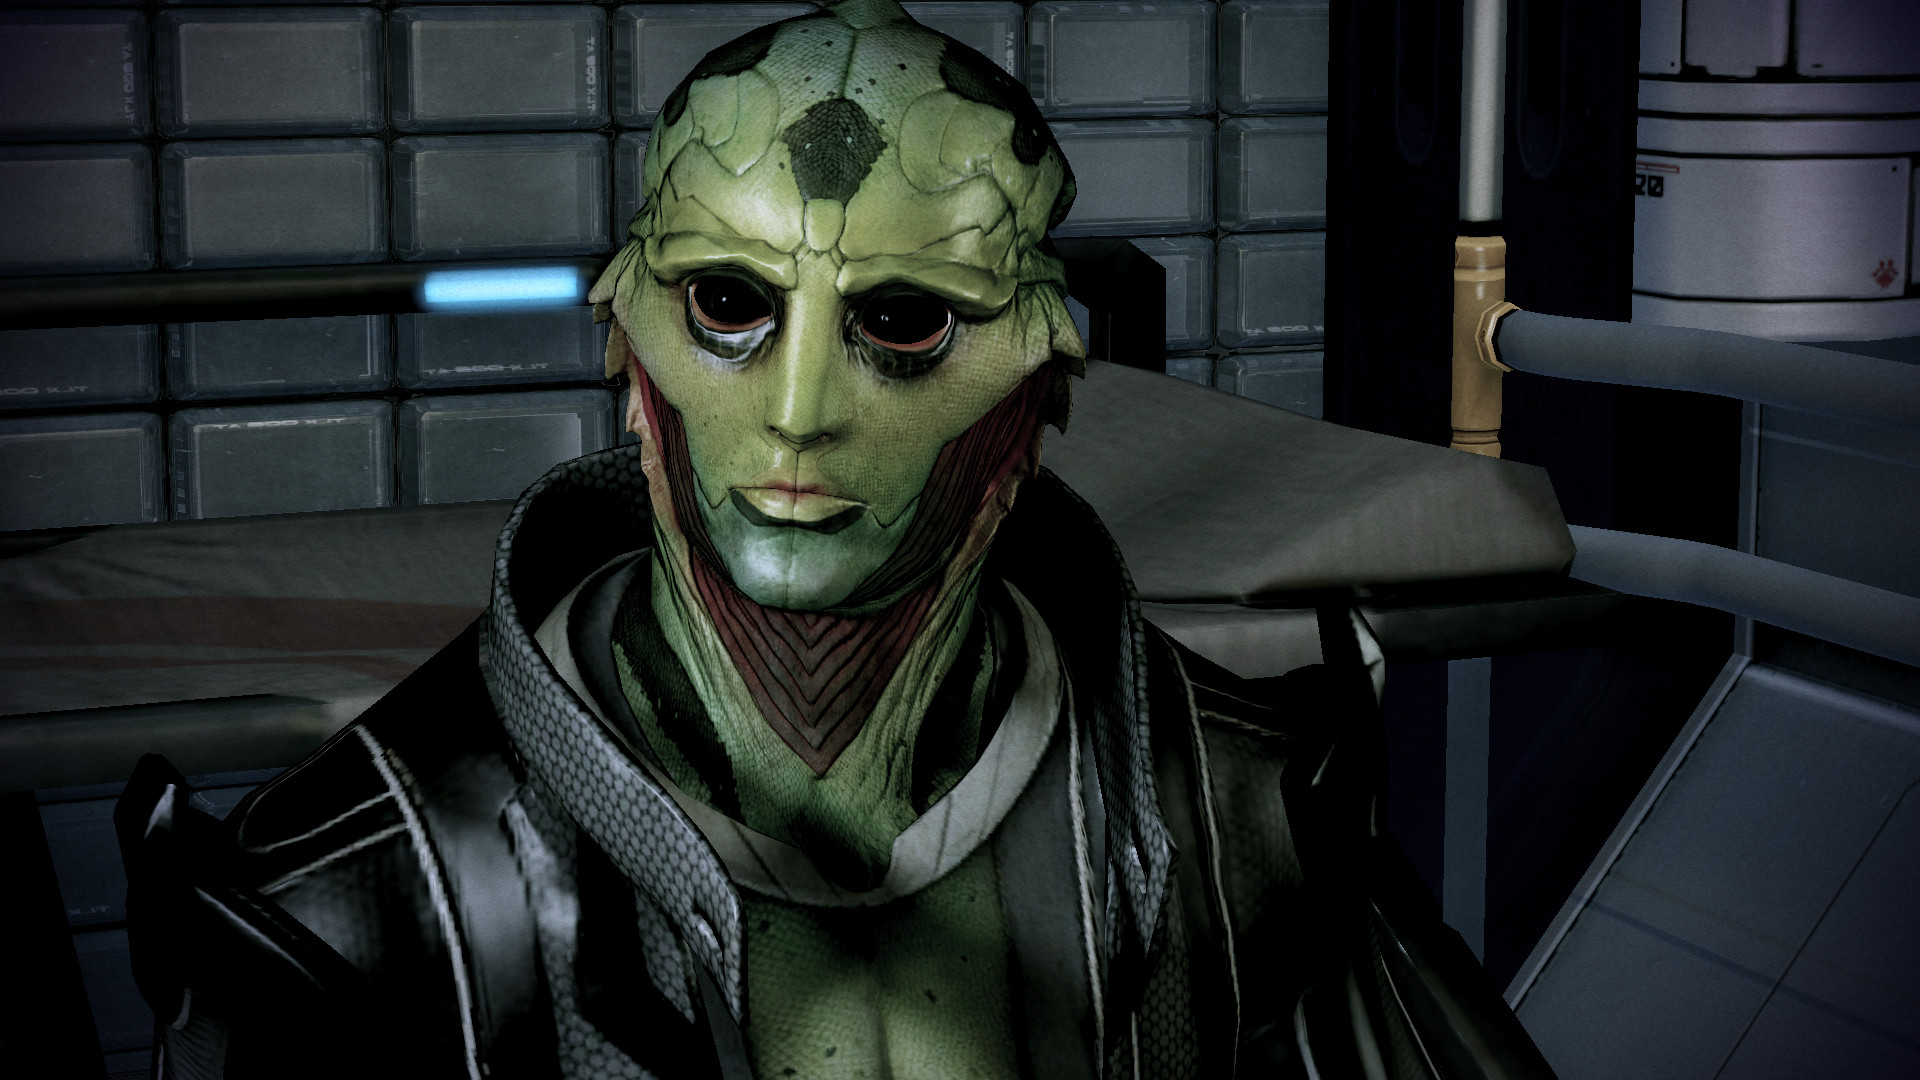 Thane_Krios_06_by_johntesh